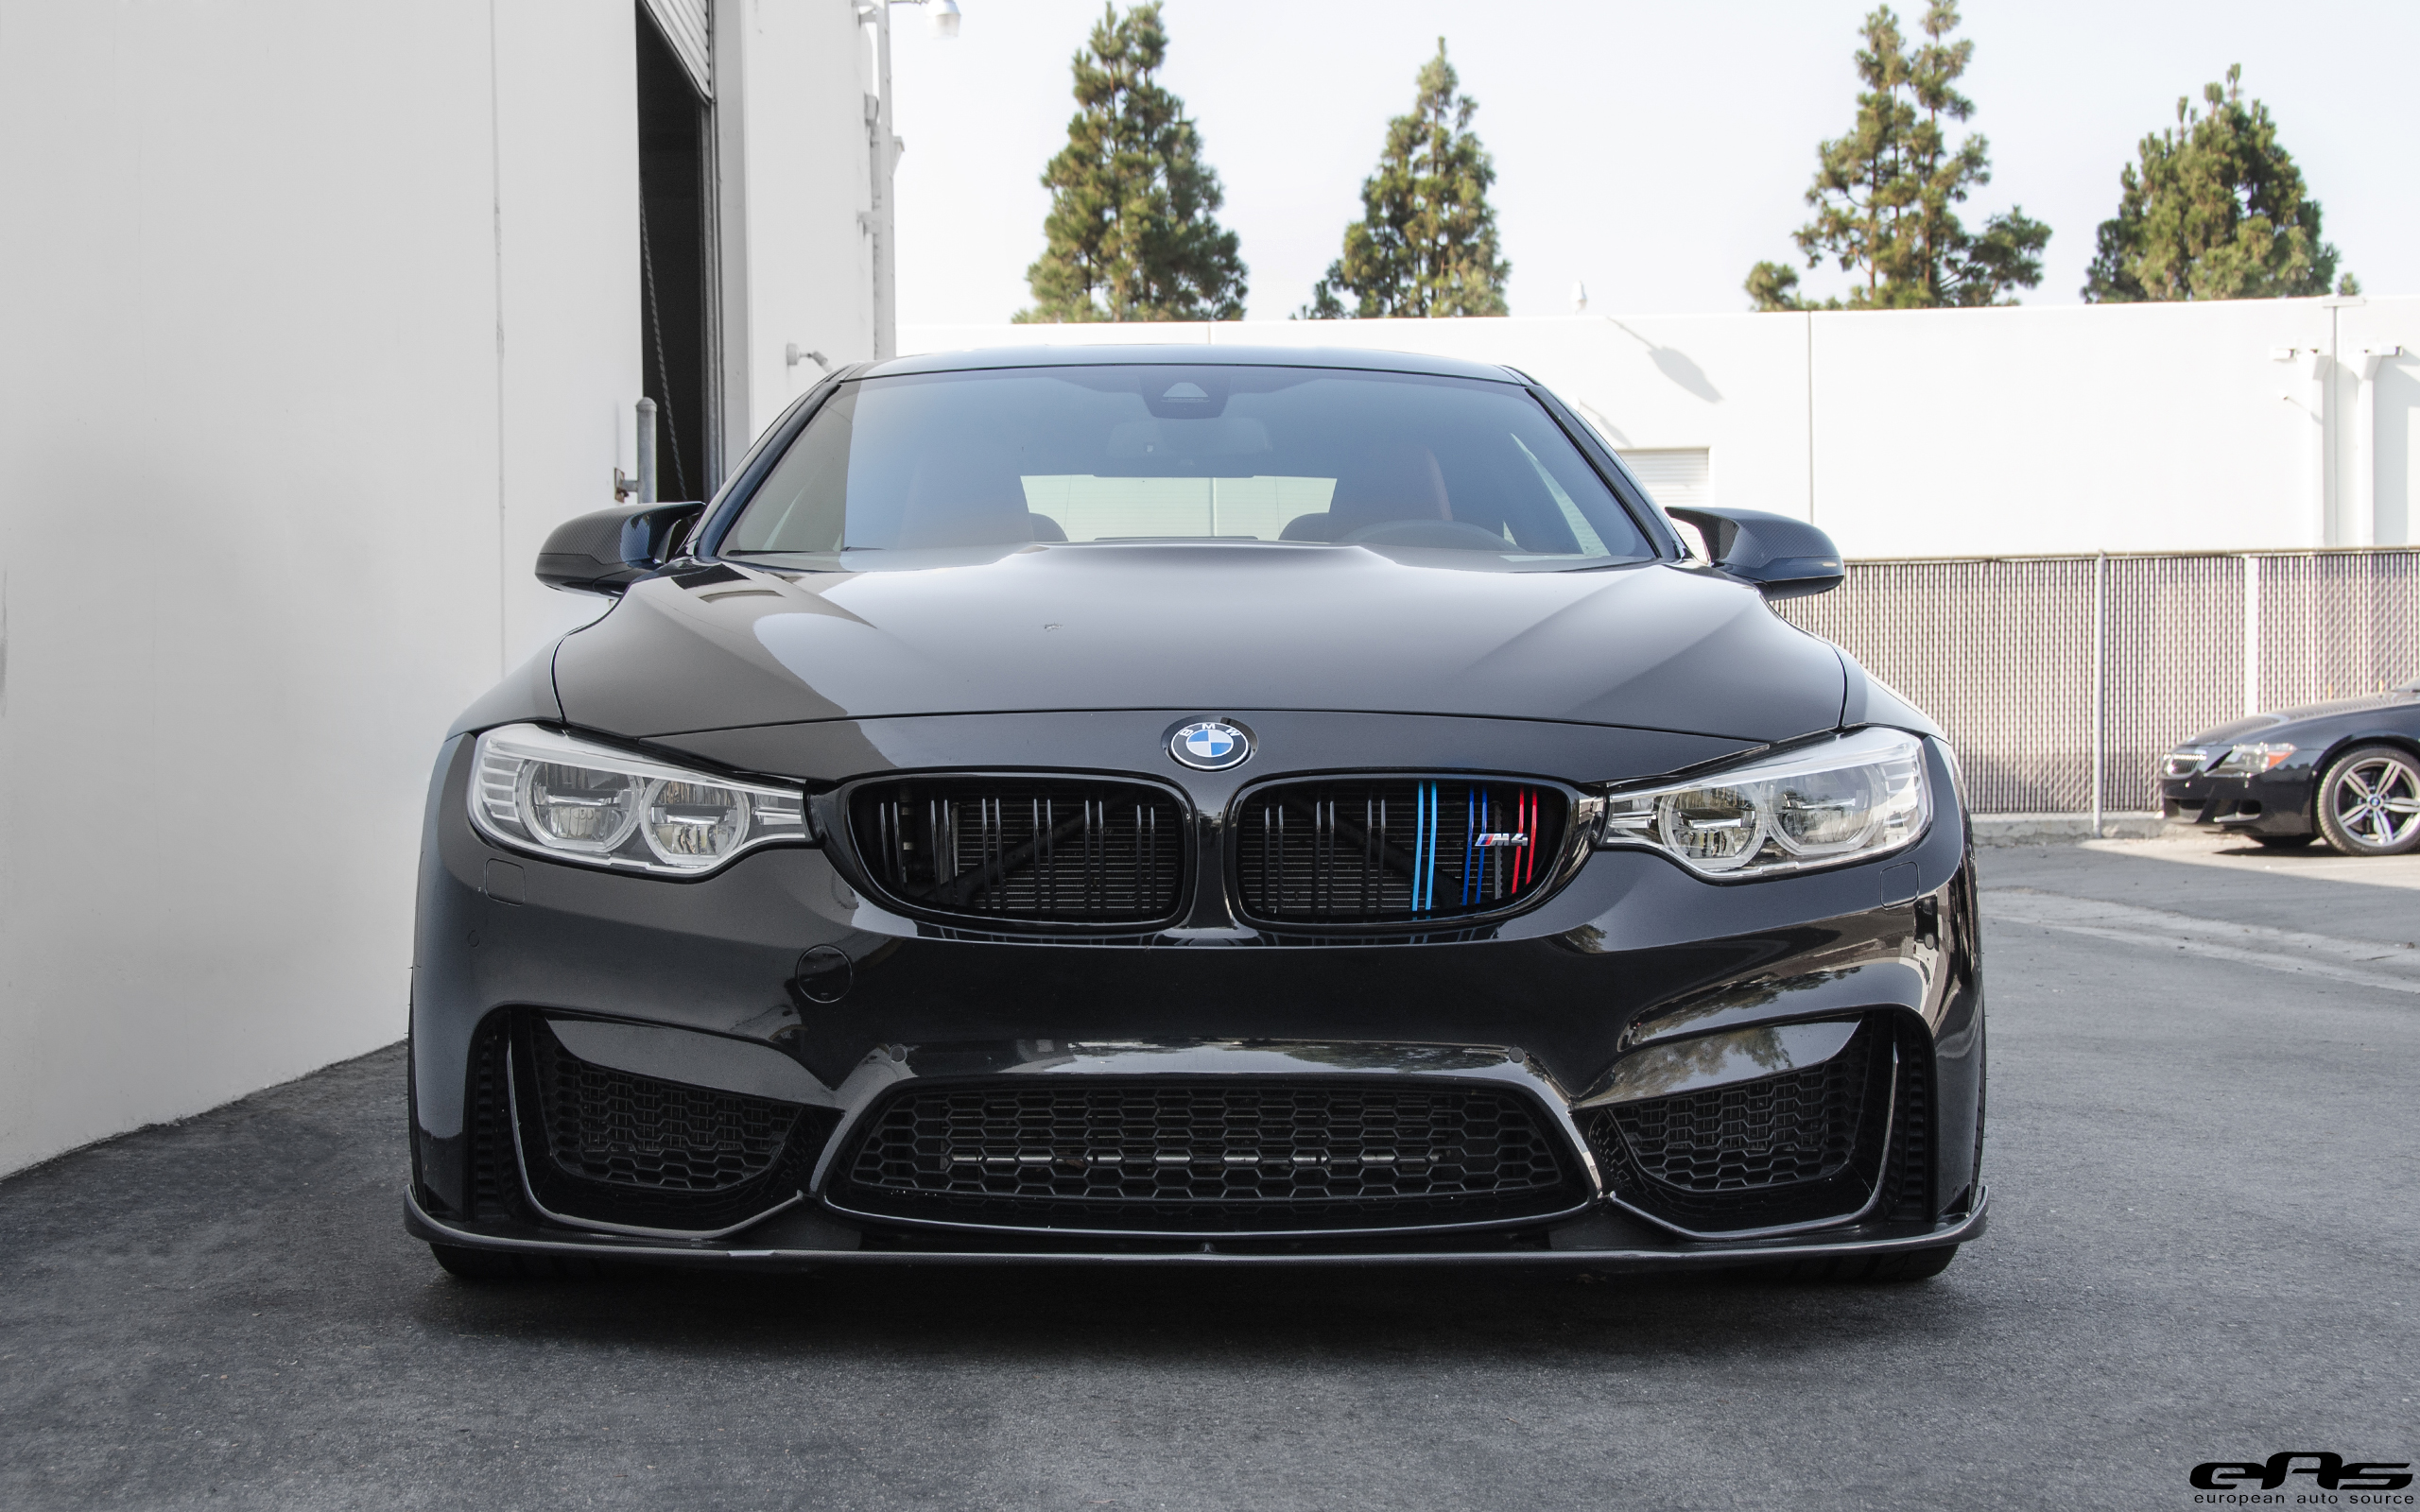 Blacked Out Bmw M4 With Vorsteiner Aero Parts And Custom Wheels